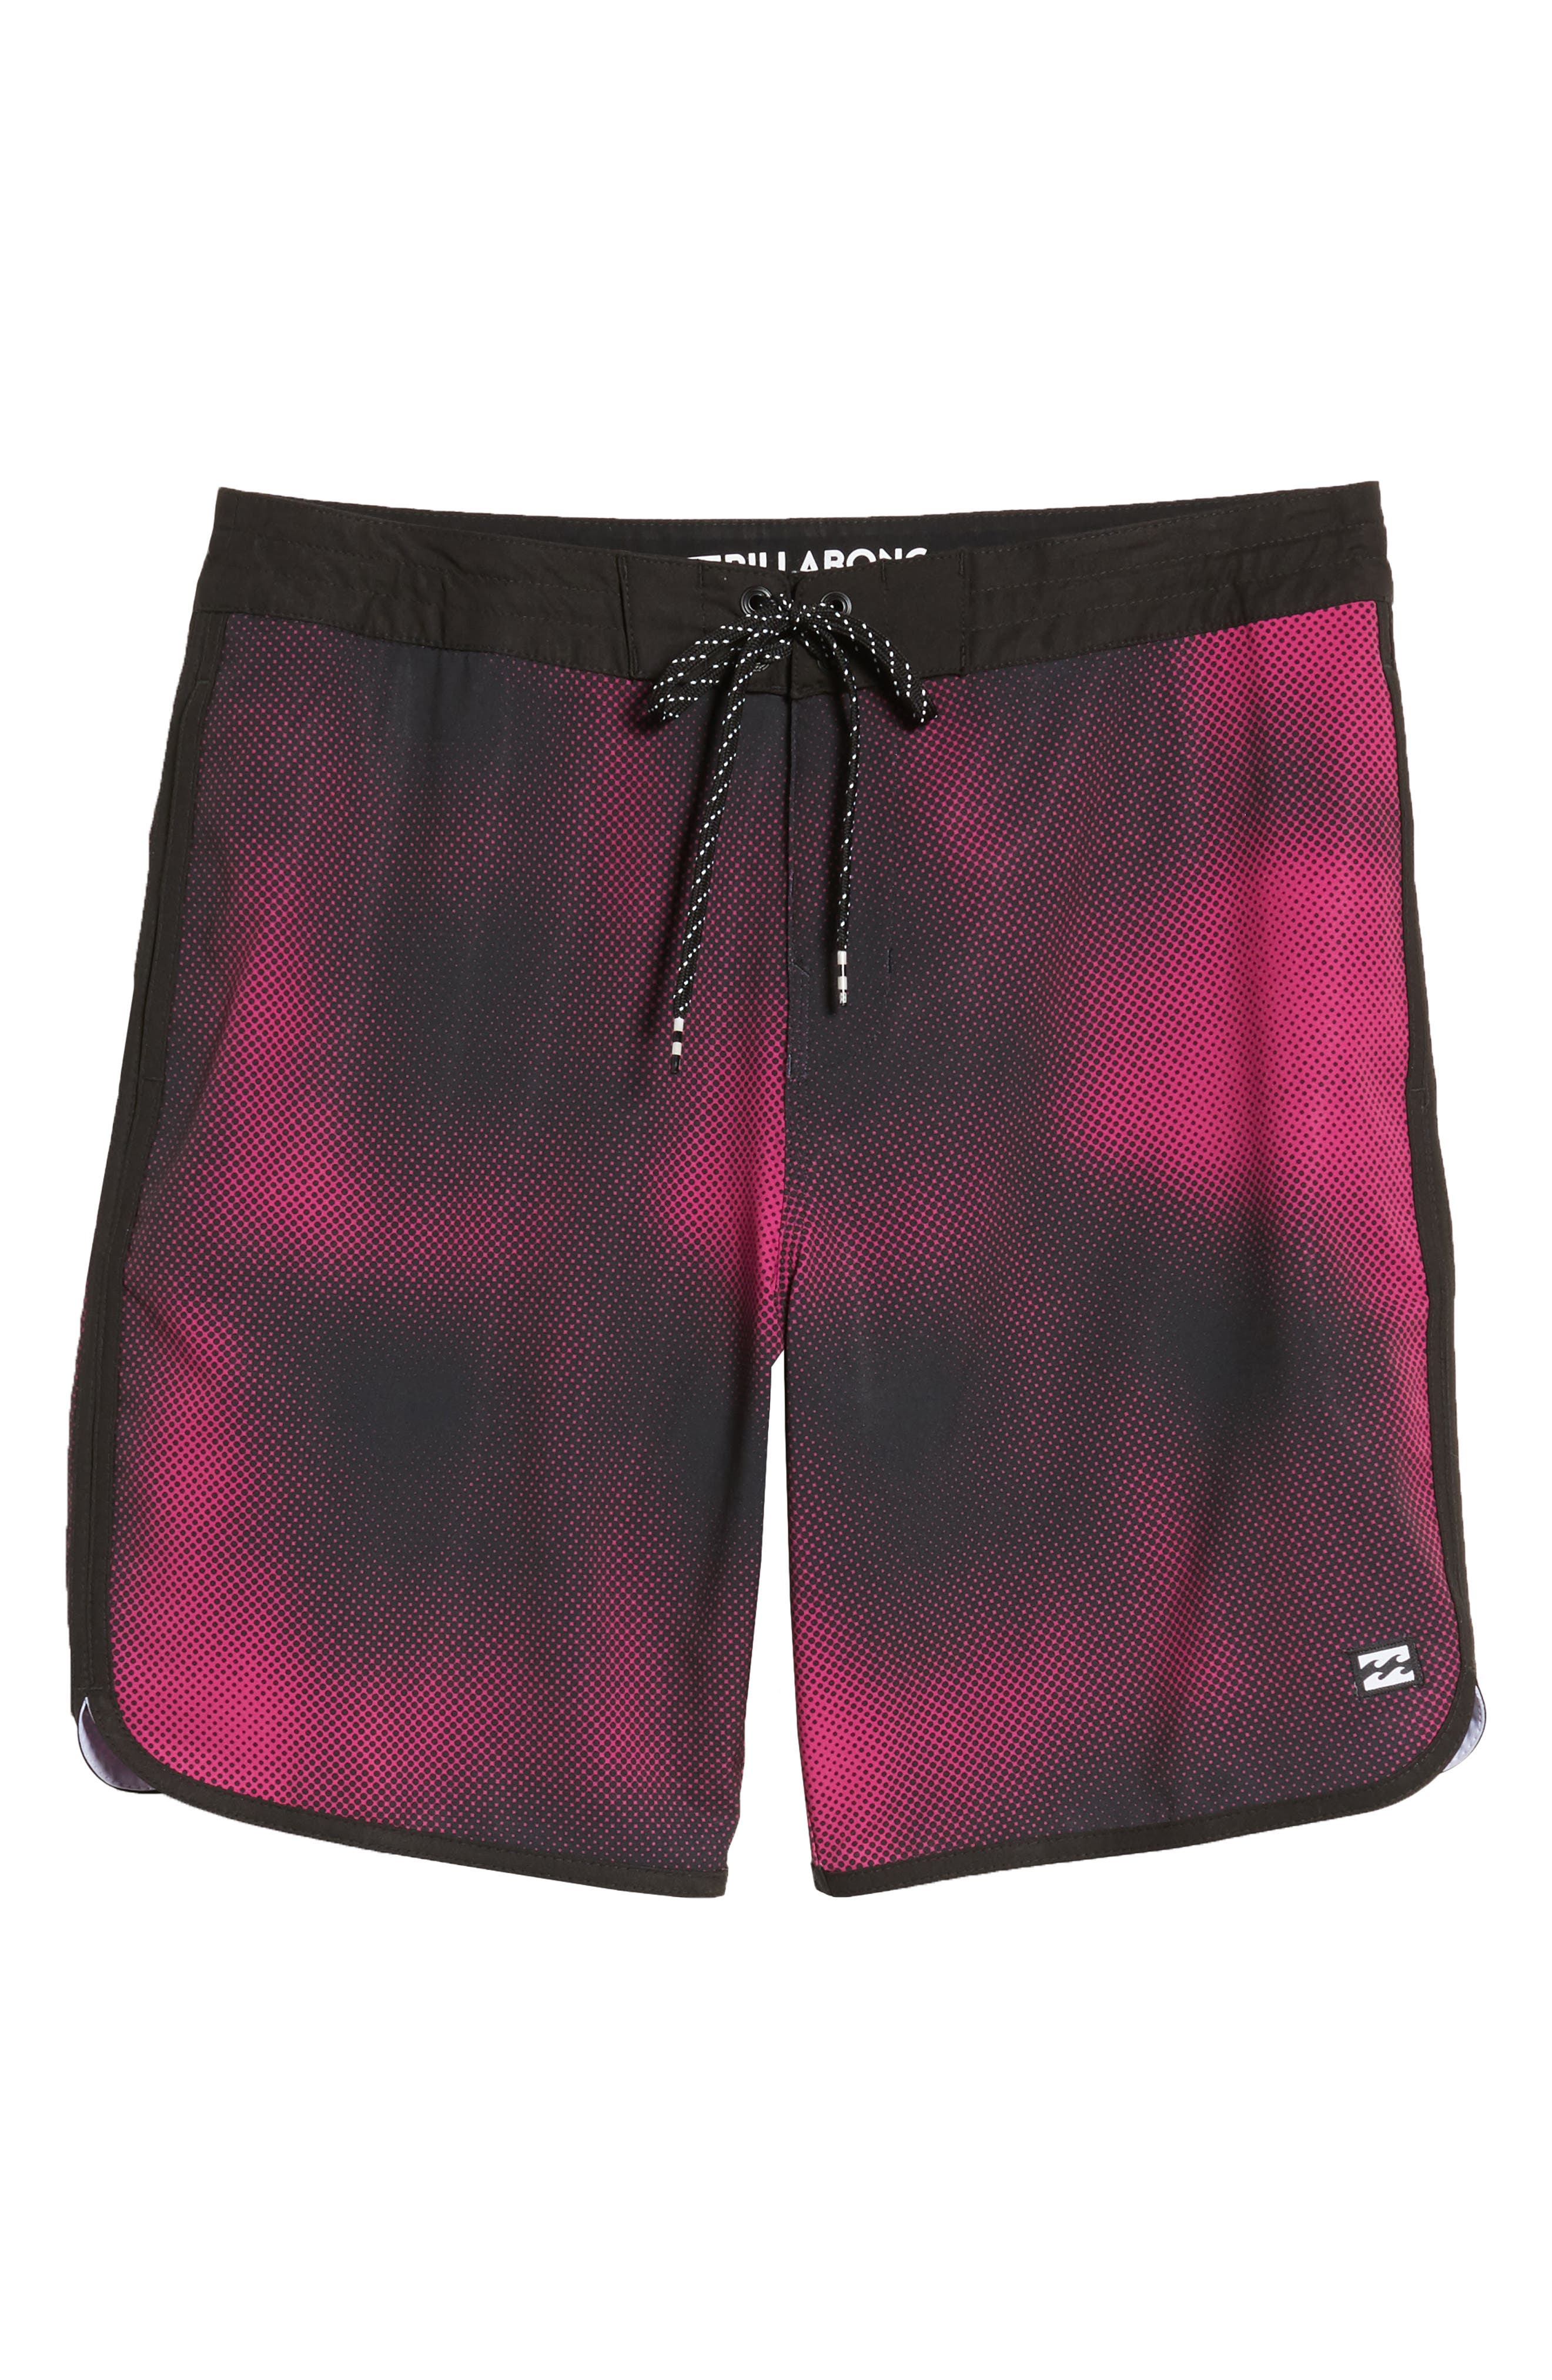 73 Lo Tides Lineup Board Shorts,                             Alternate thumbnail 6, color,                             Stealth